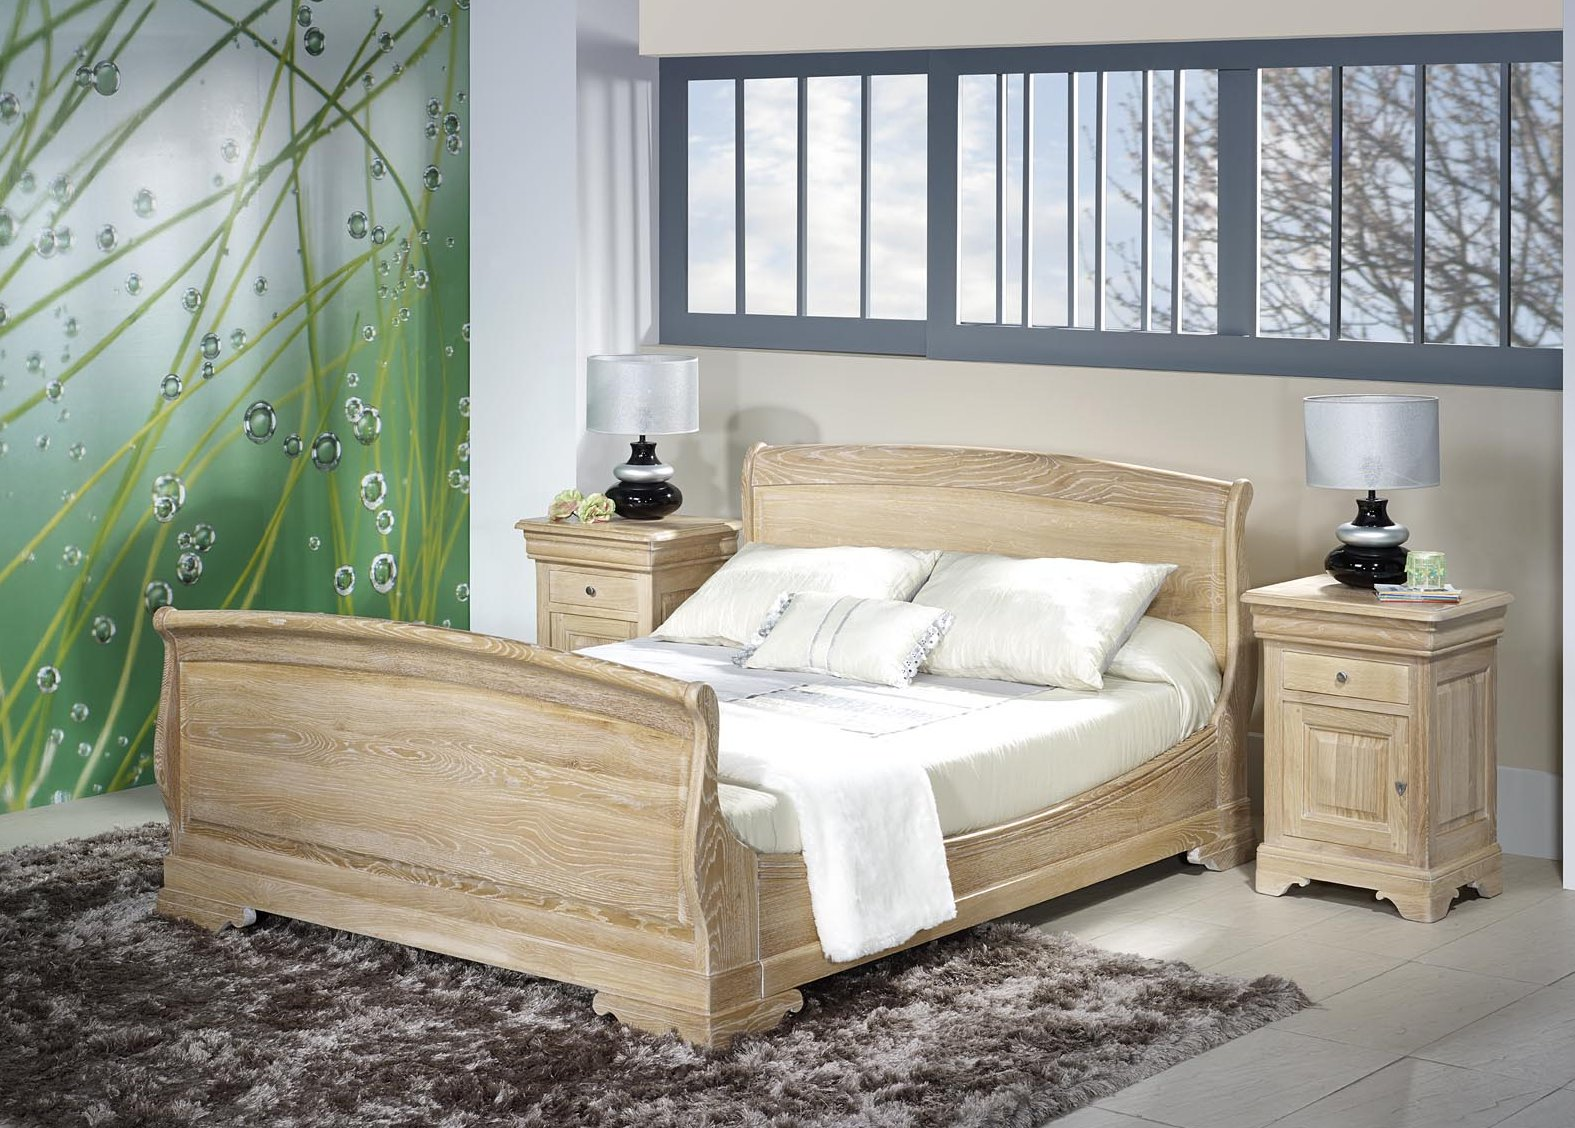 lit thomas 140x190 en ch ne massif de style louis philippe. Black Bedroom Furniture Sets. Home Design Ideas